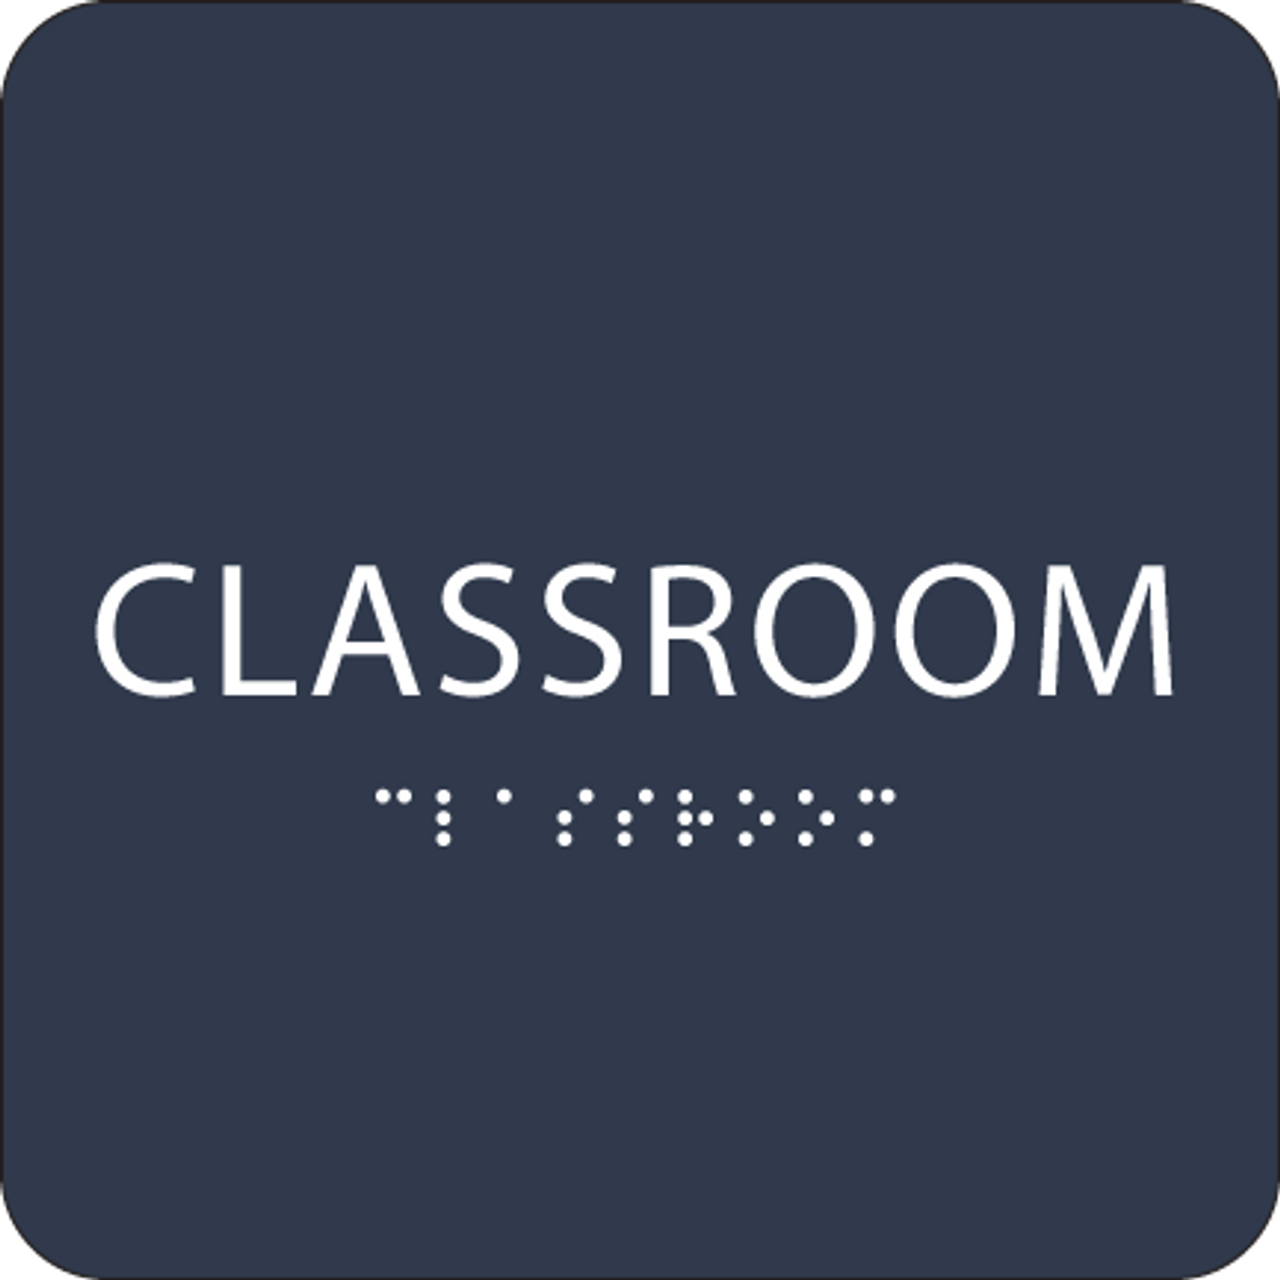 Navy Classroom Tactile Sign